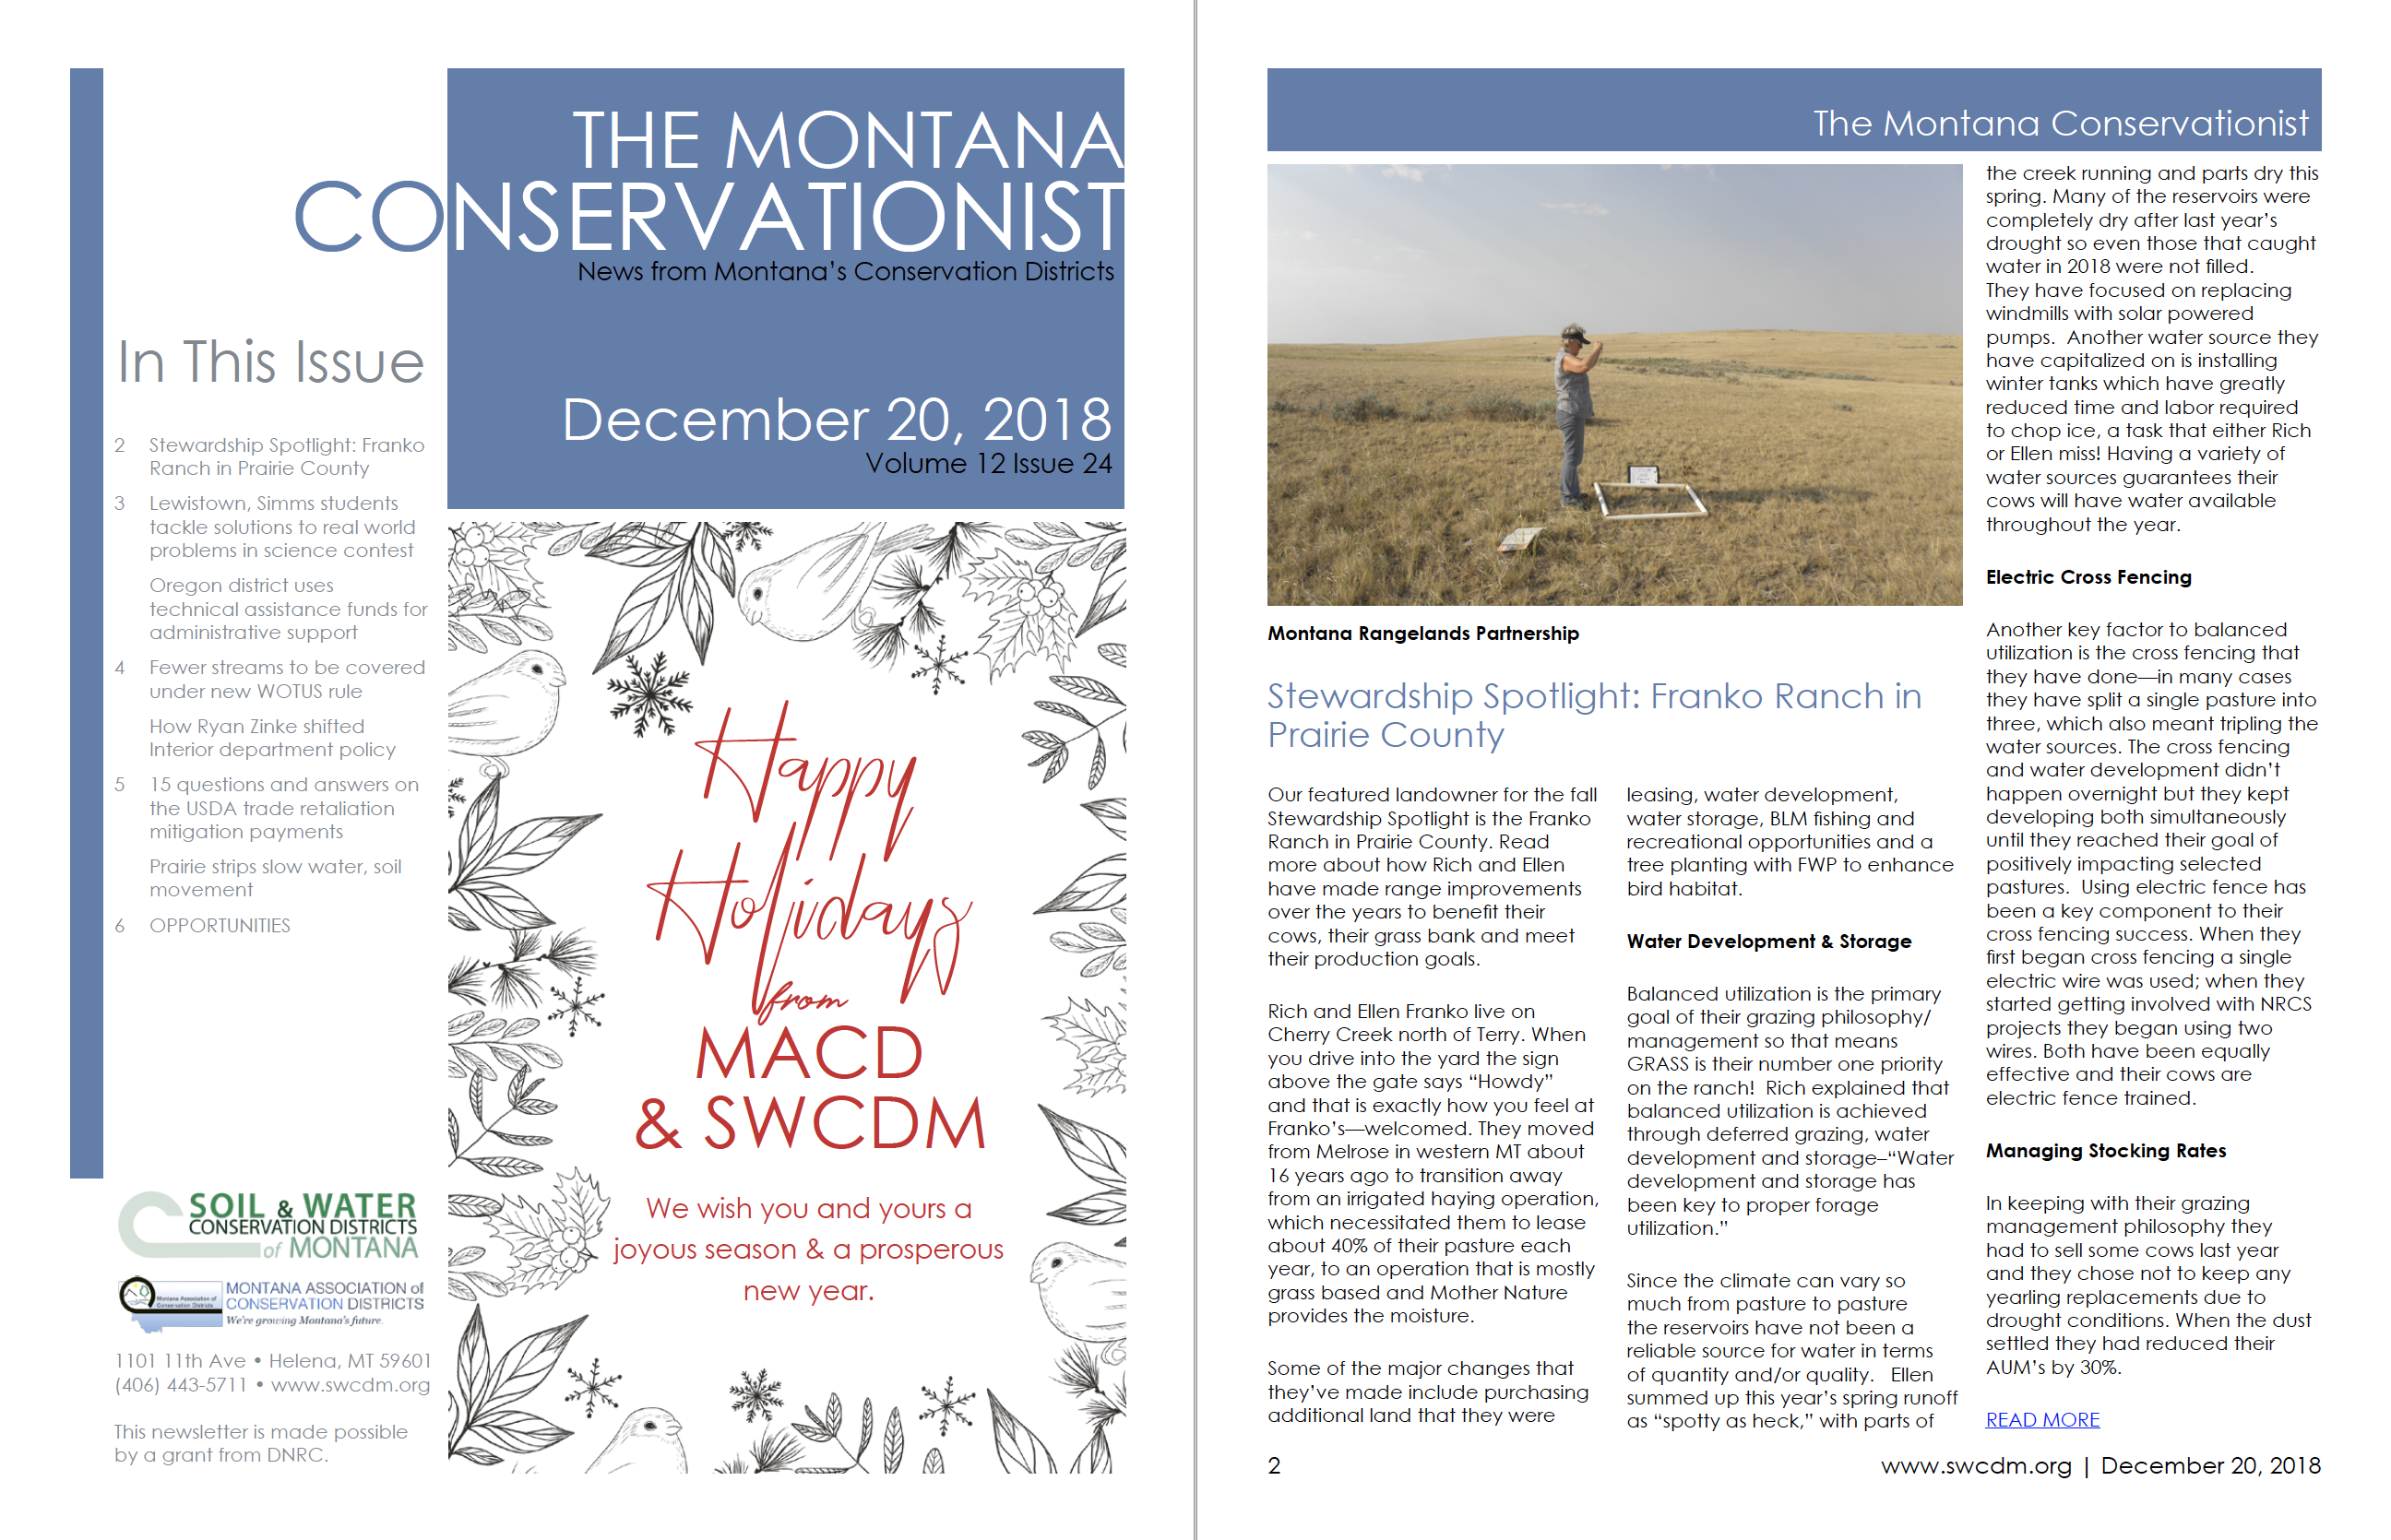 The Montana Conservationist December 20